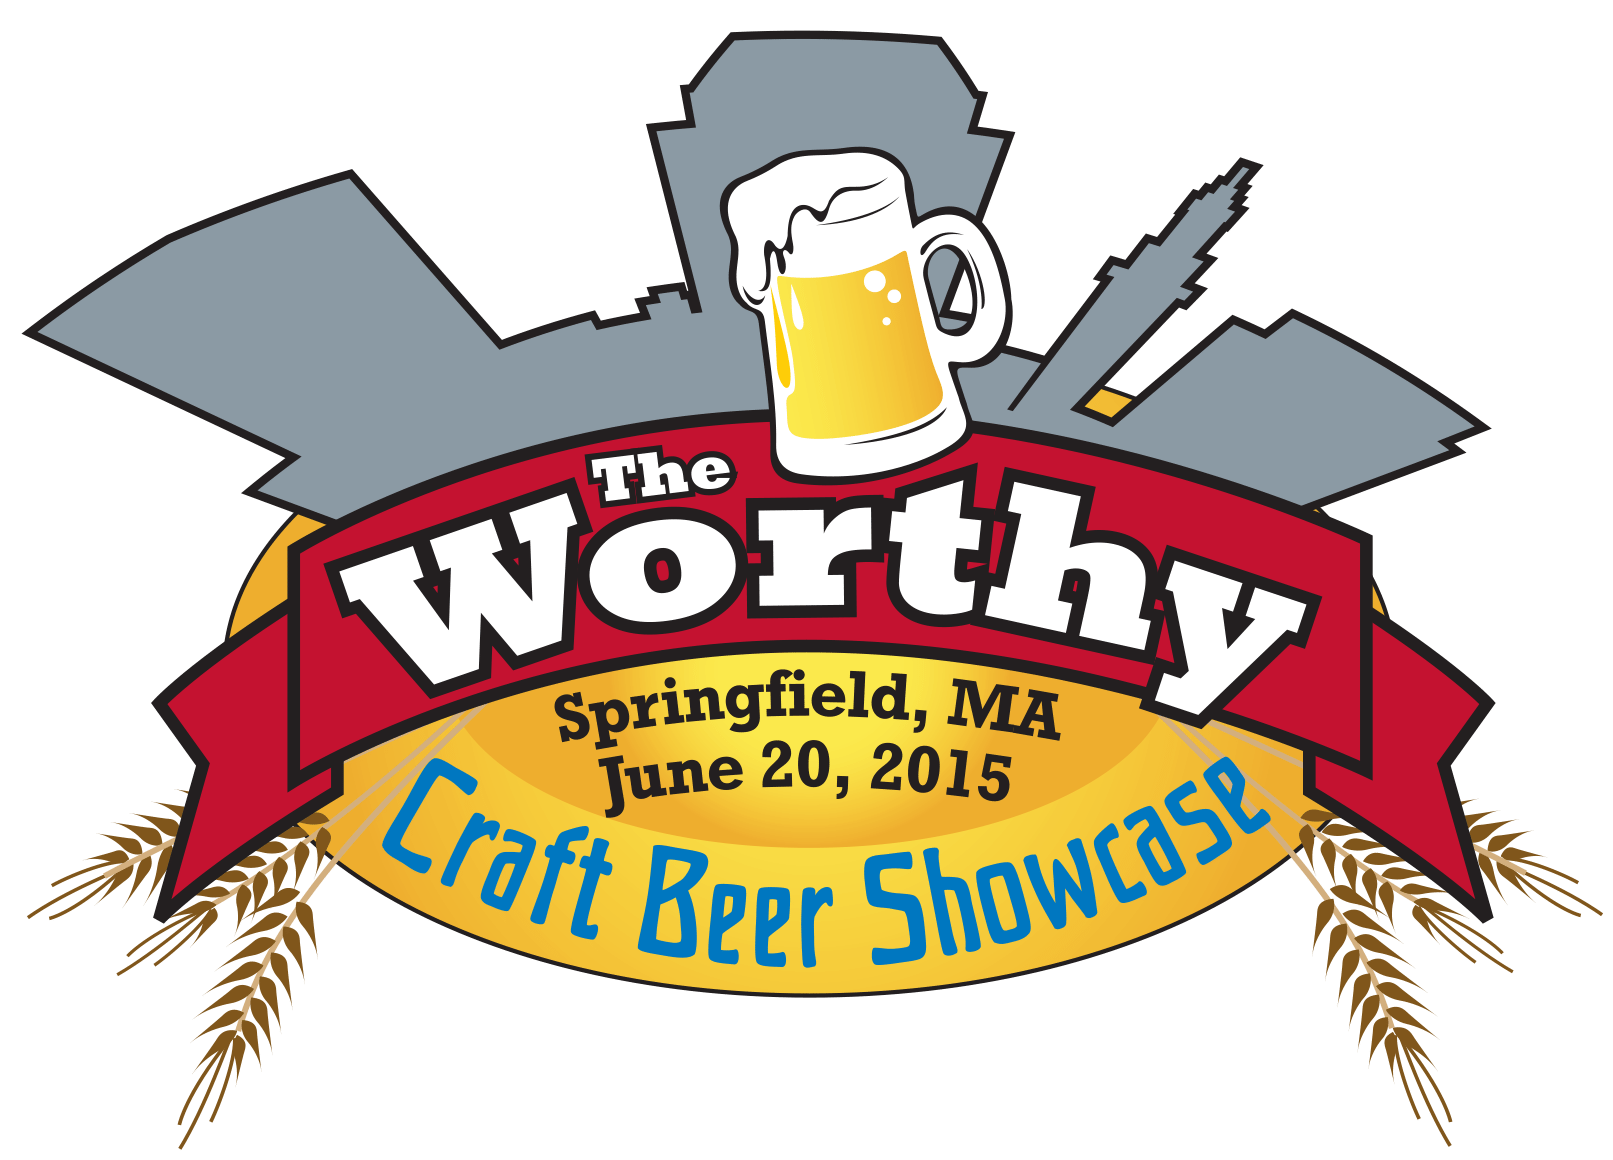 The Worthy Brew Fest